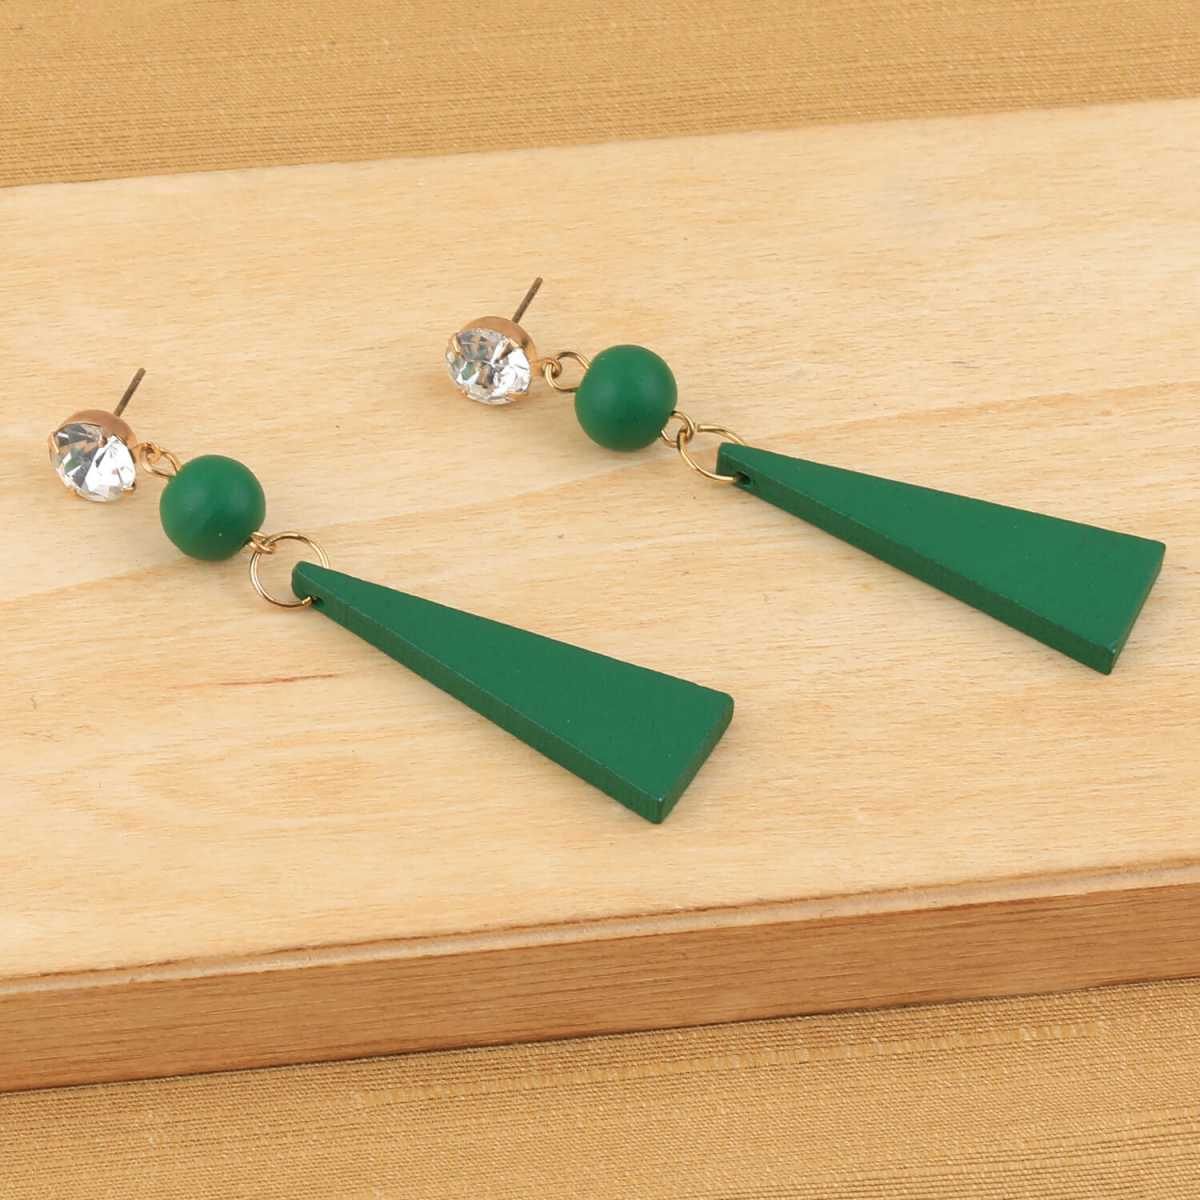 SILVER SHINE Beautiful Stylish Diamond Green Wooden Light Weight Dangler Earrings for Girls and Women.